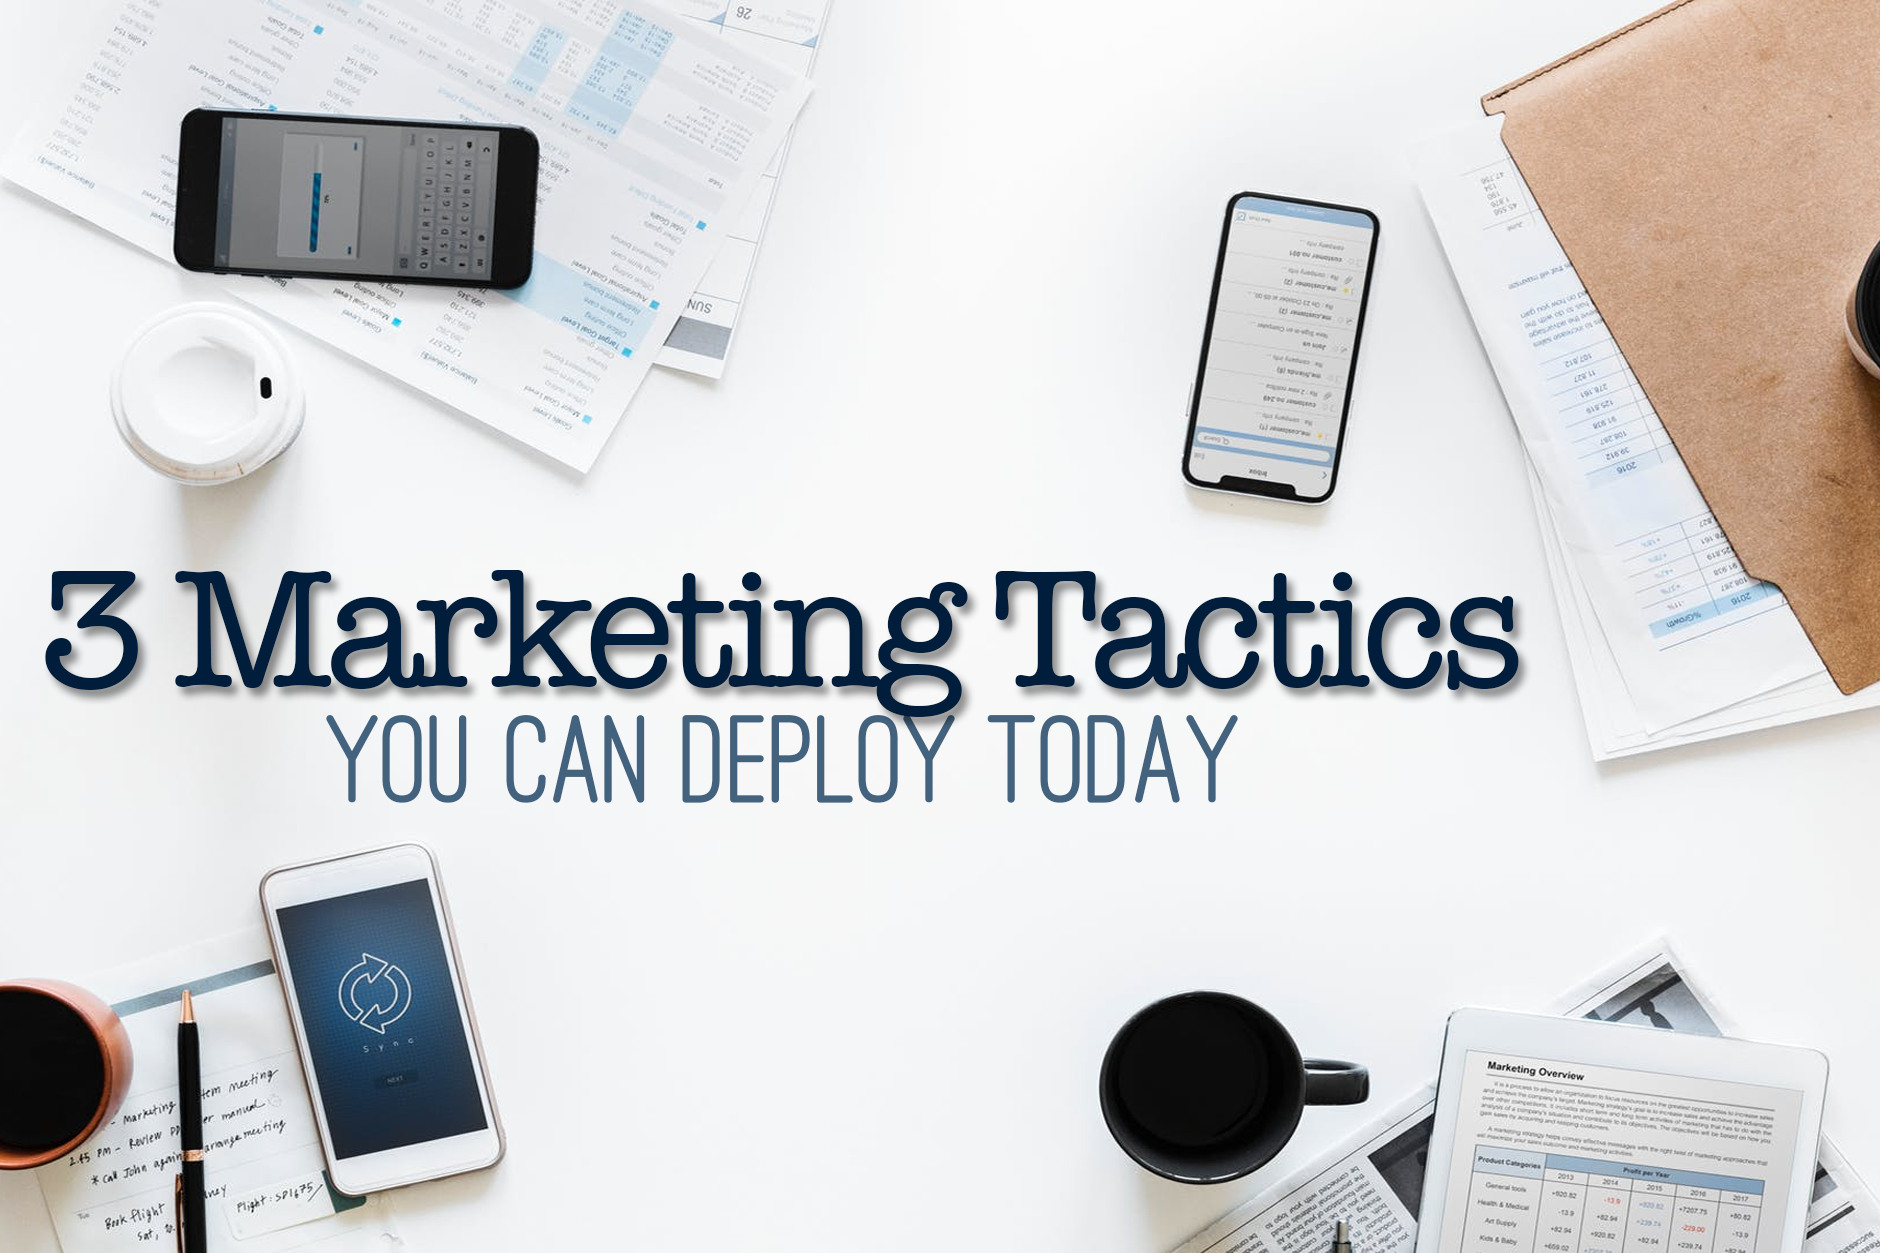 3 Restaurant Marketing Tactics You Can Deploy Today